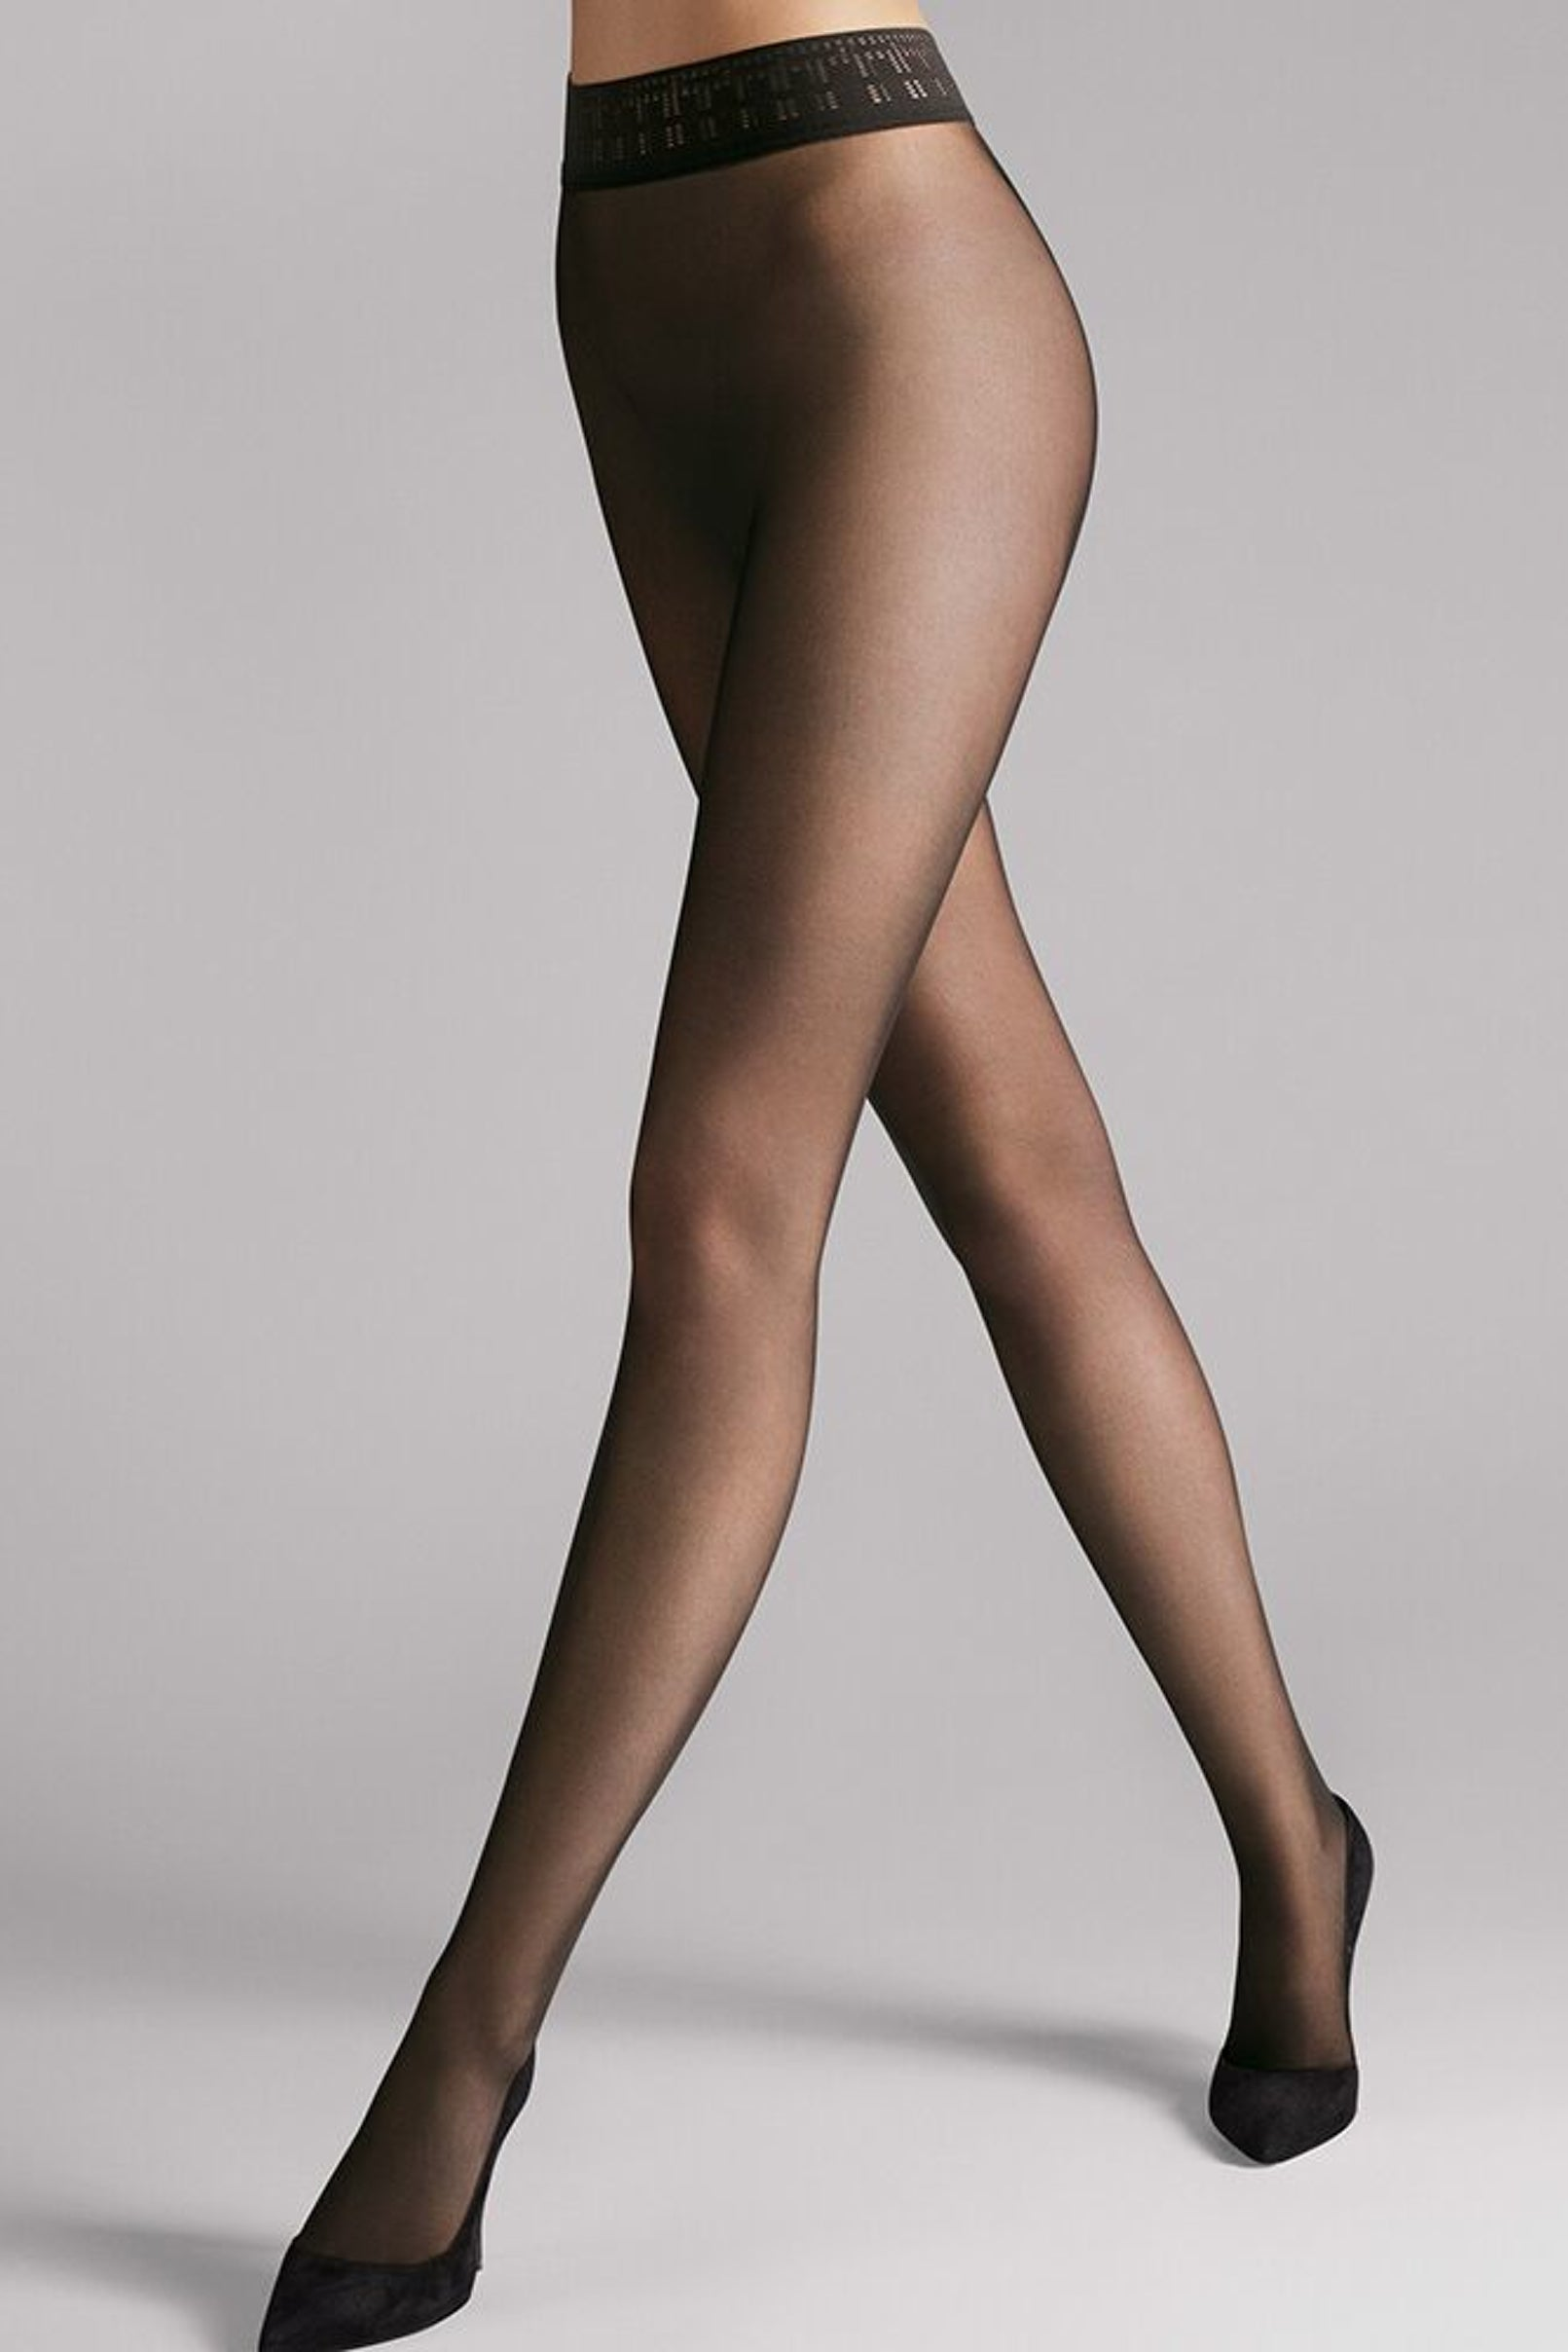 Woldford Fatal 15 Seamless Tights